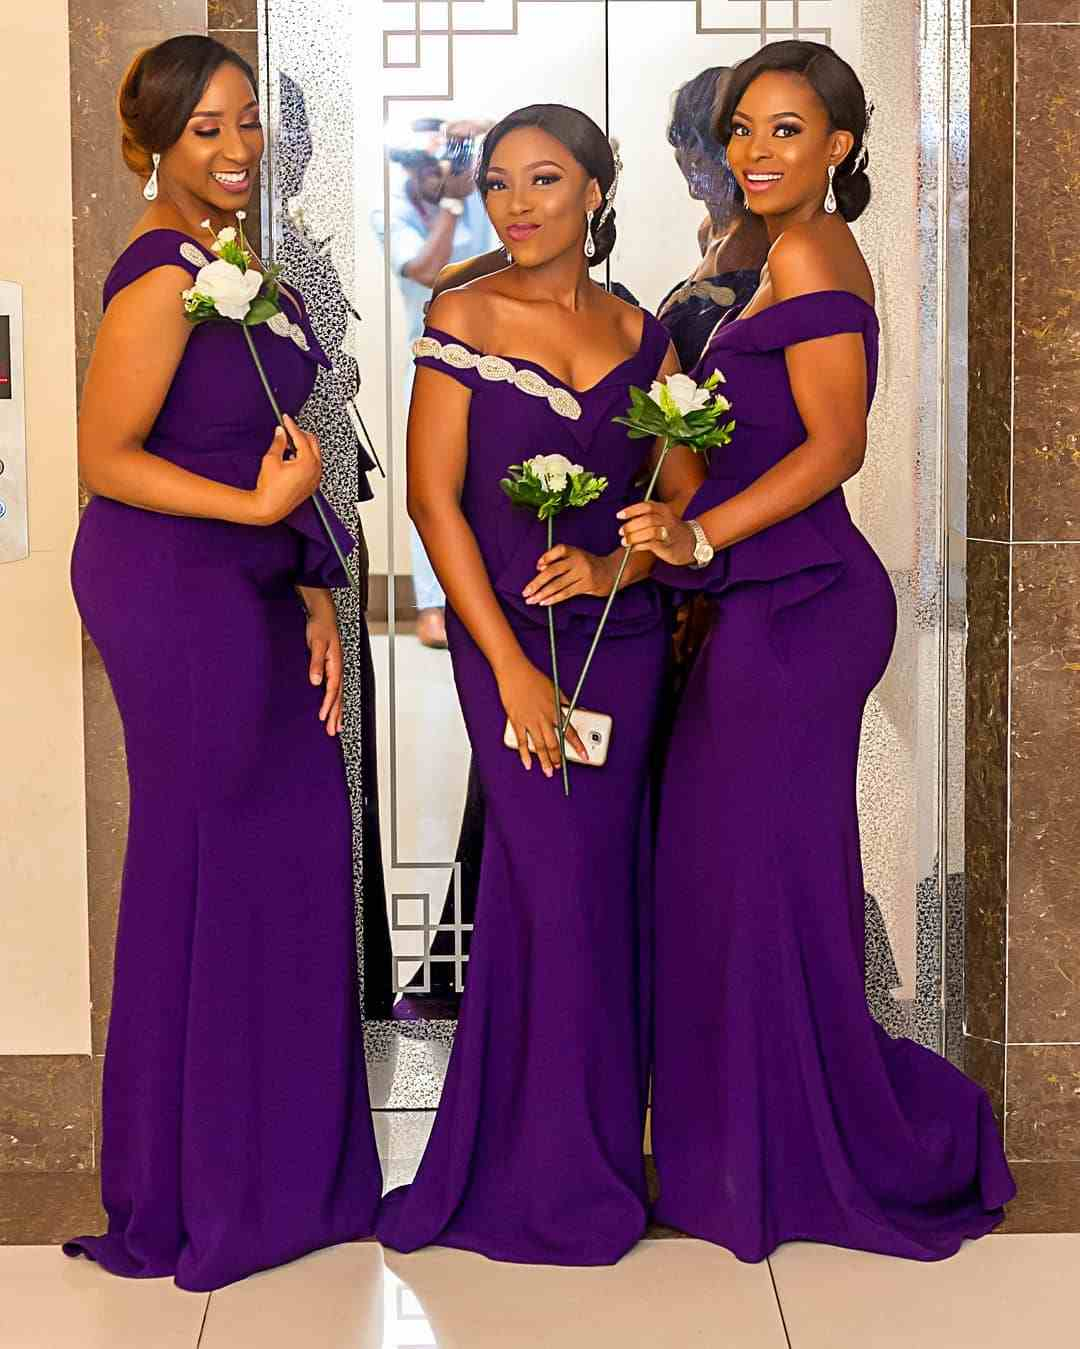 f11284380d8 Images Of Bridal Train Dresses In Nigeria - Gomes Weine AG